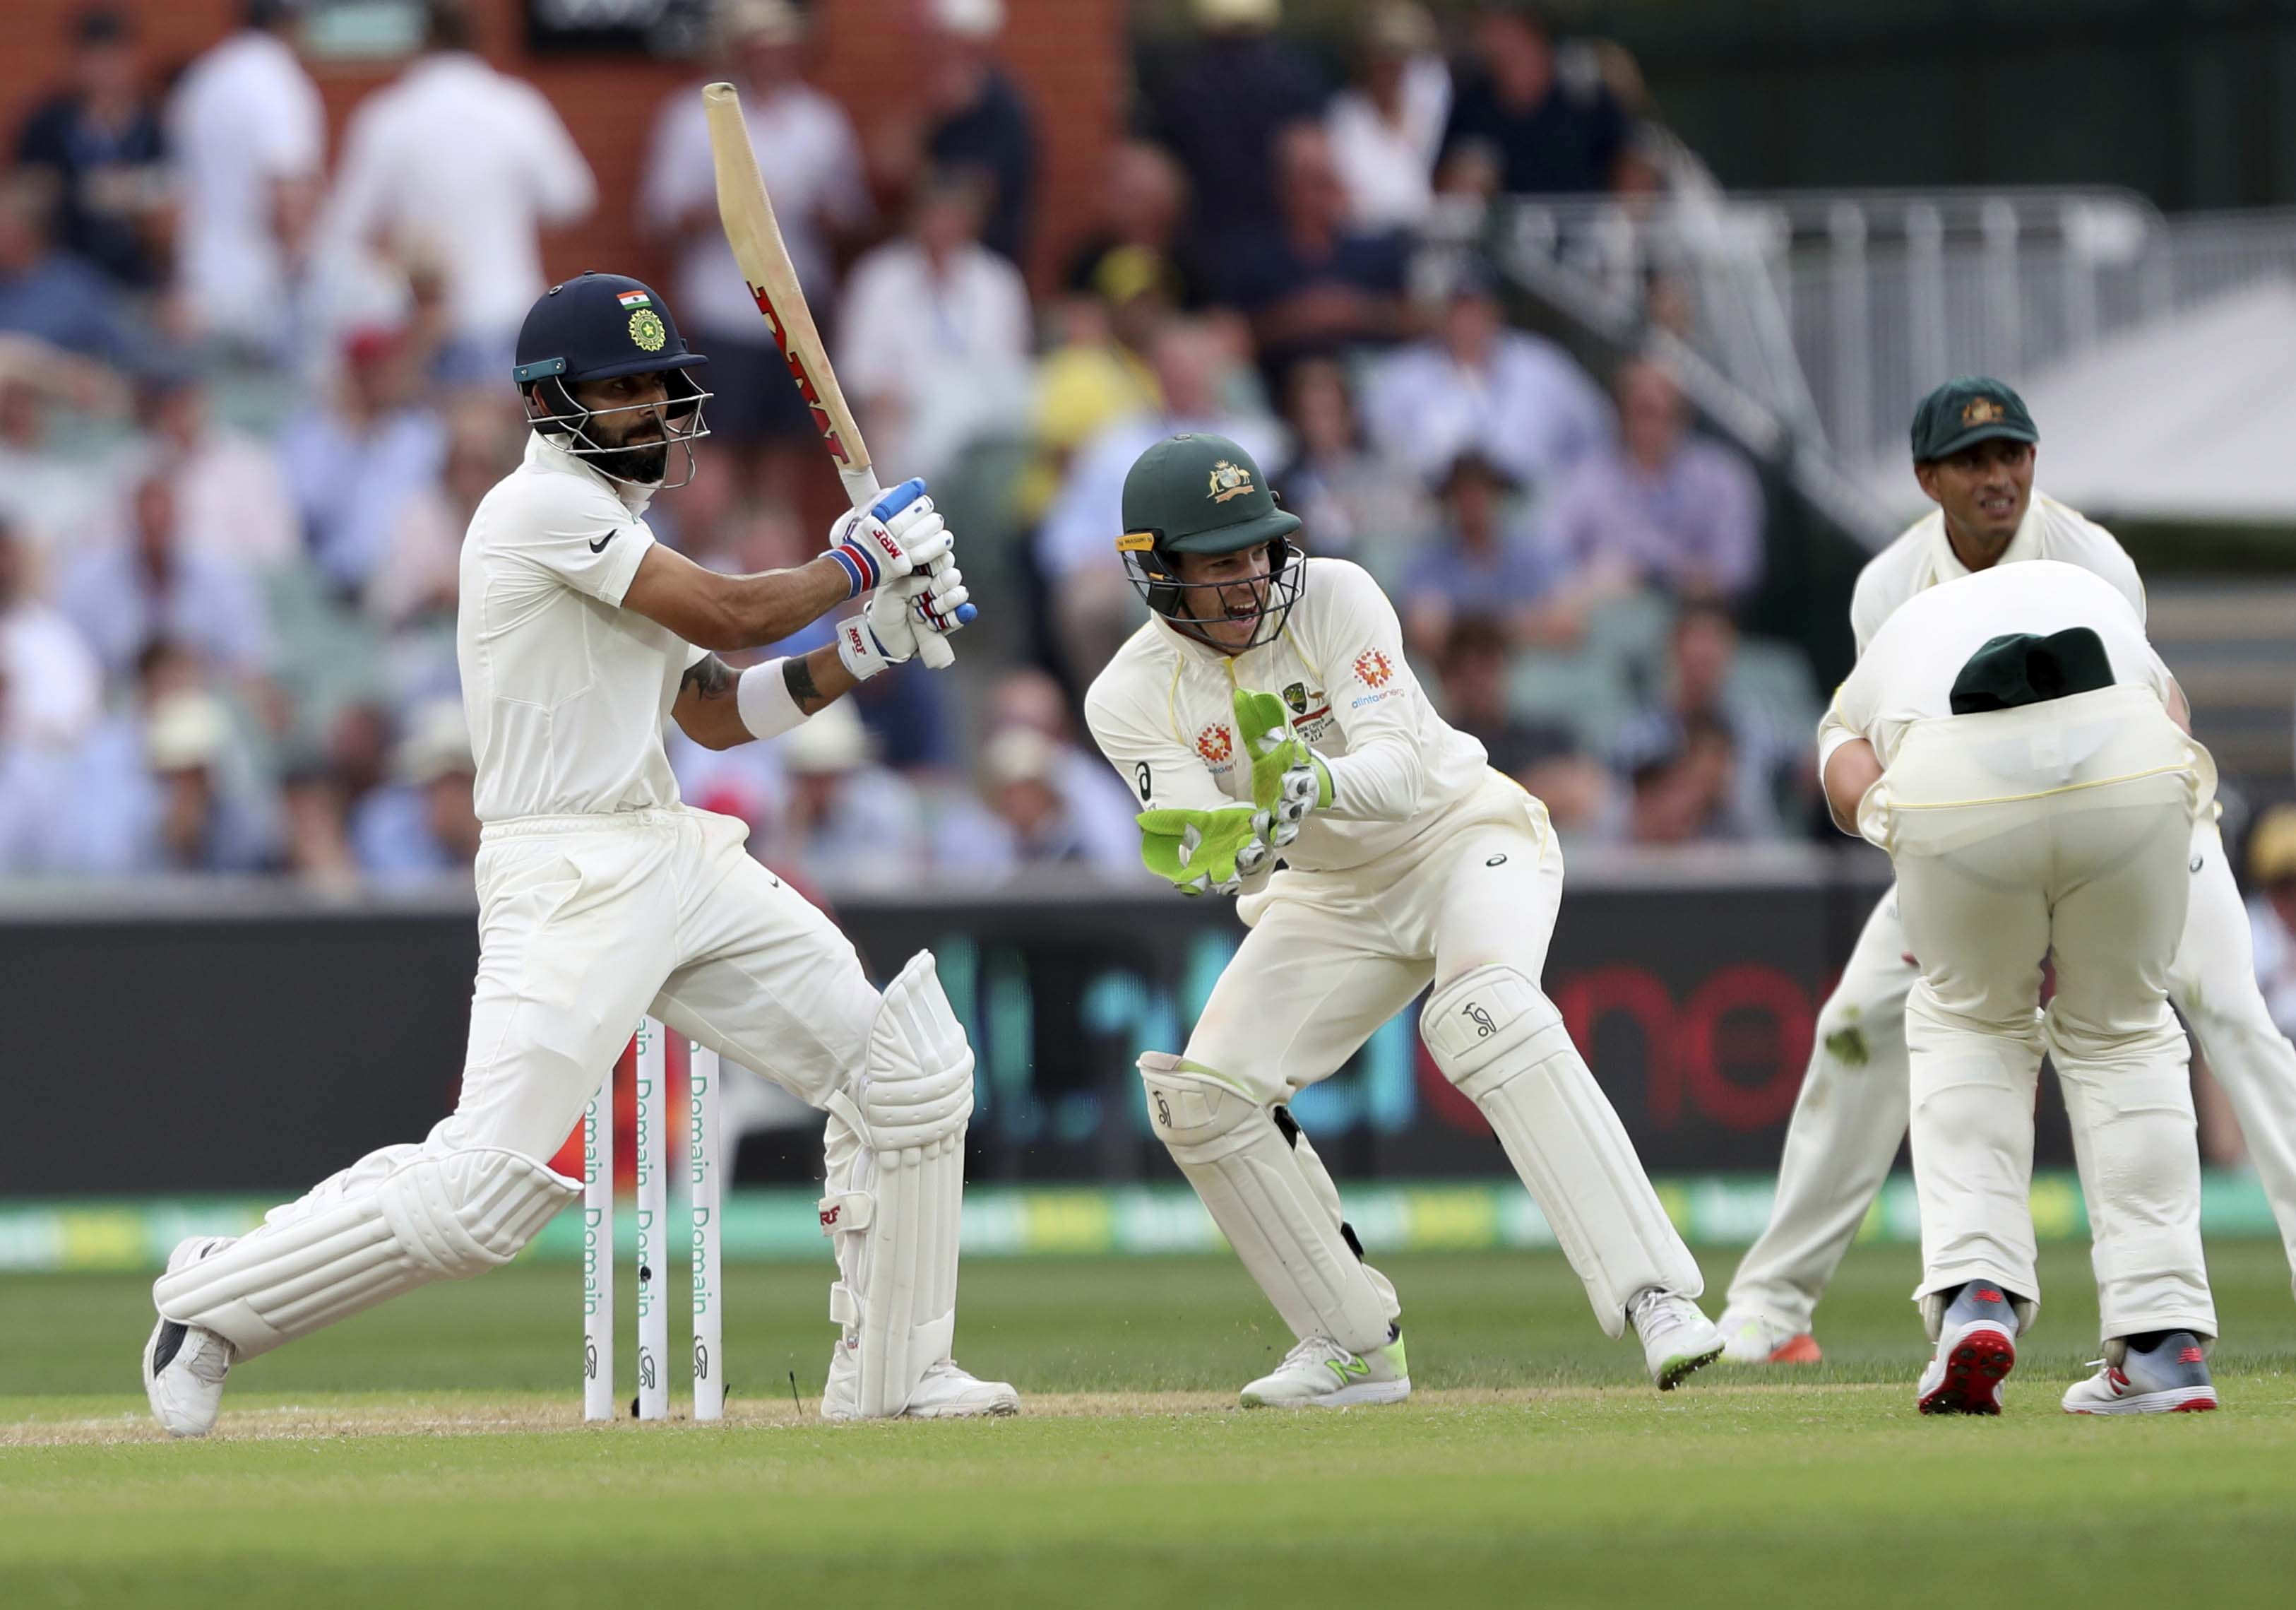 India in strong position after 3 days of 1st Test